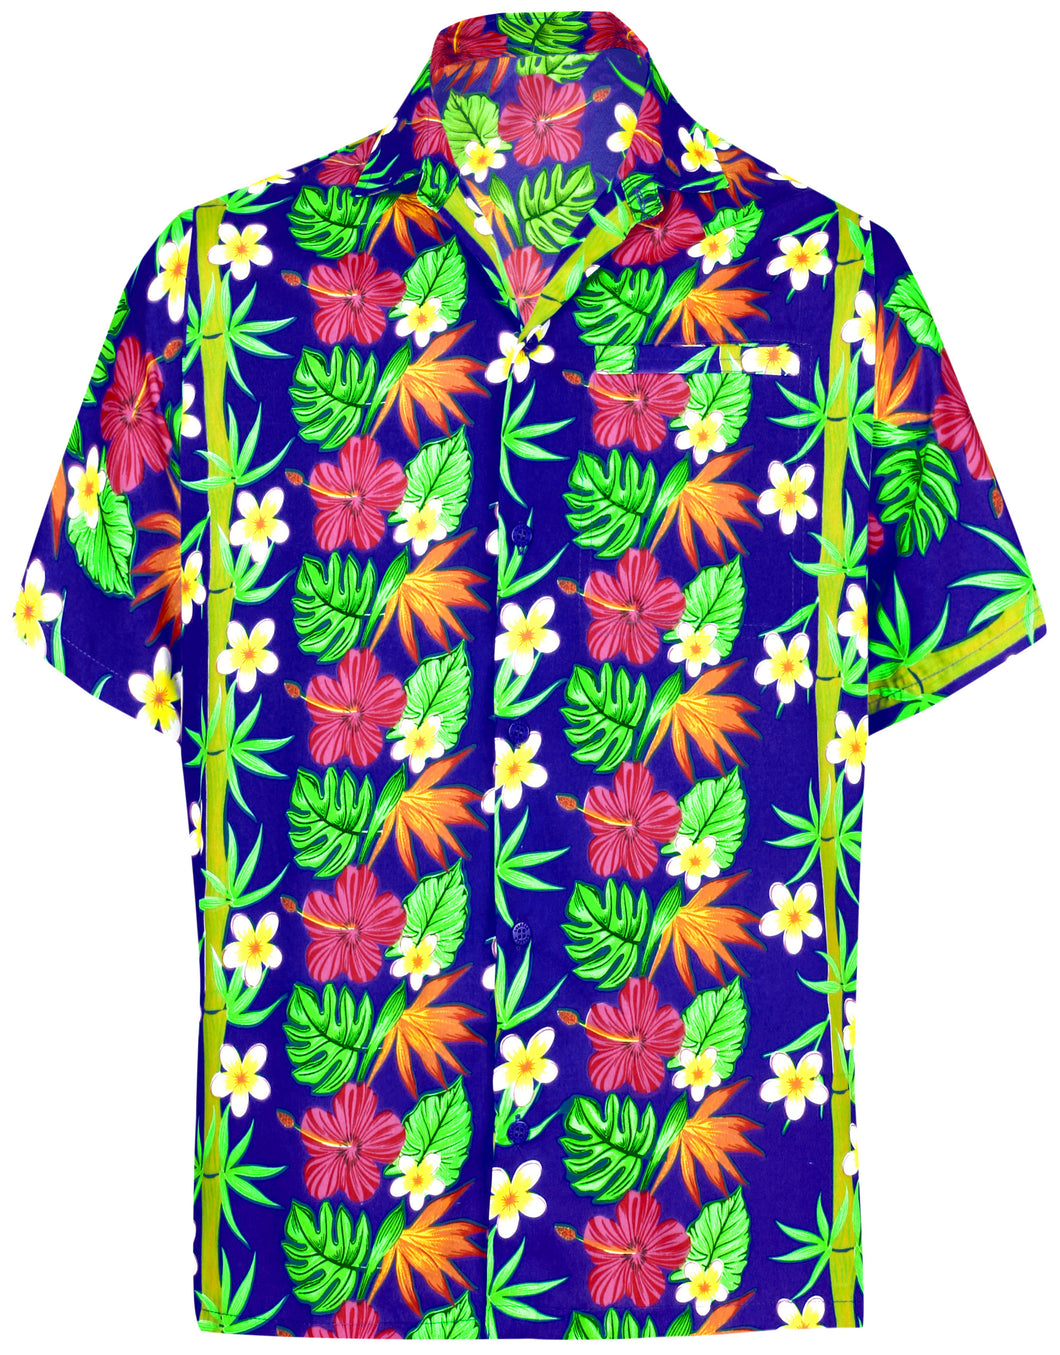 la-leela-mens-casual-beach-hawaiian-shirt-for-aloha-tropical-beach-front-pocket-short-sleeve-front-pocket-blue